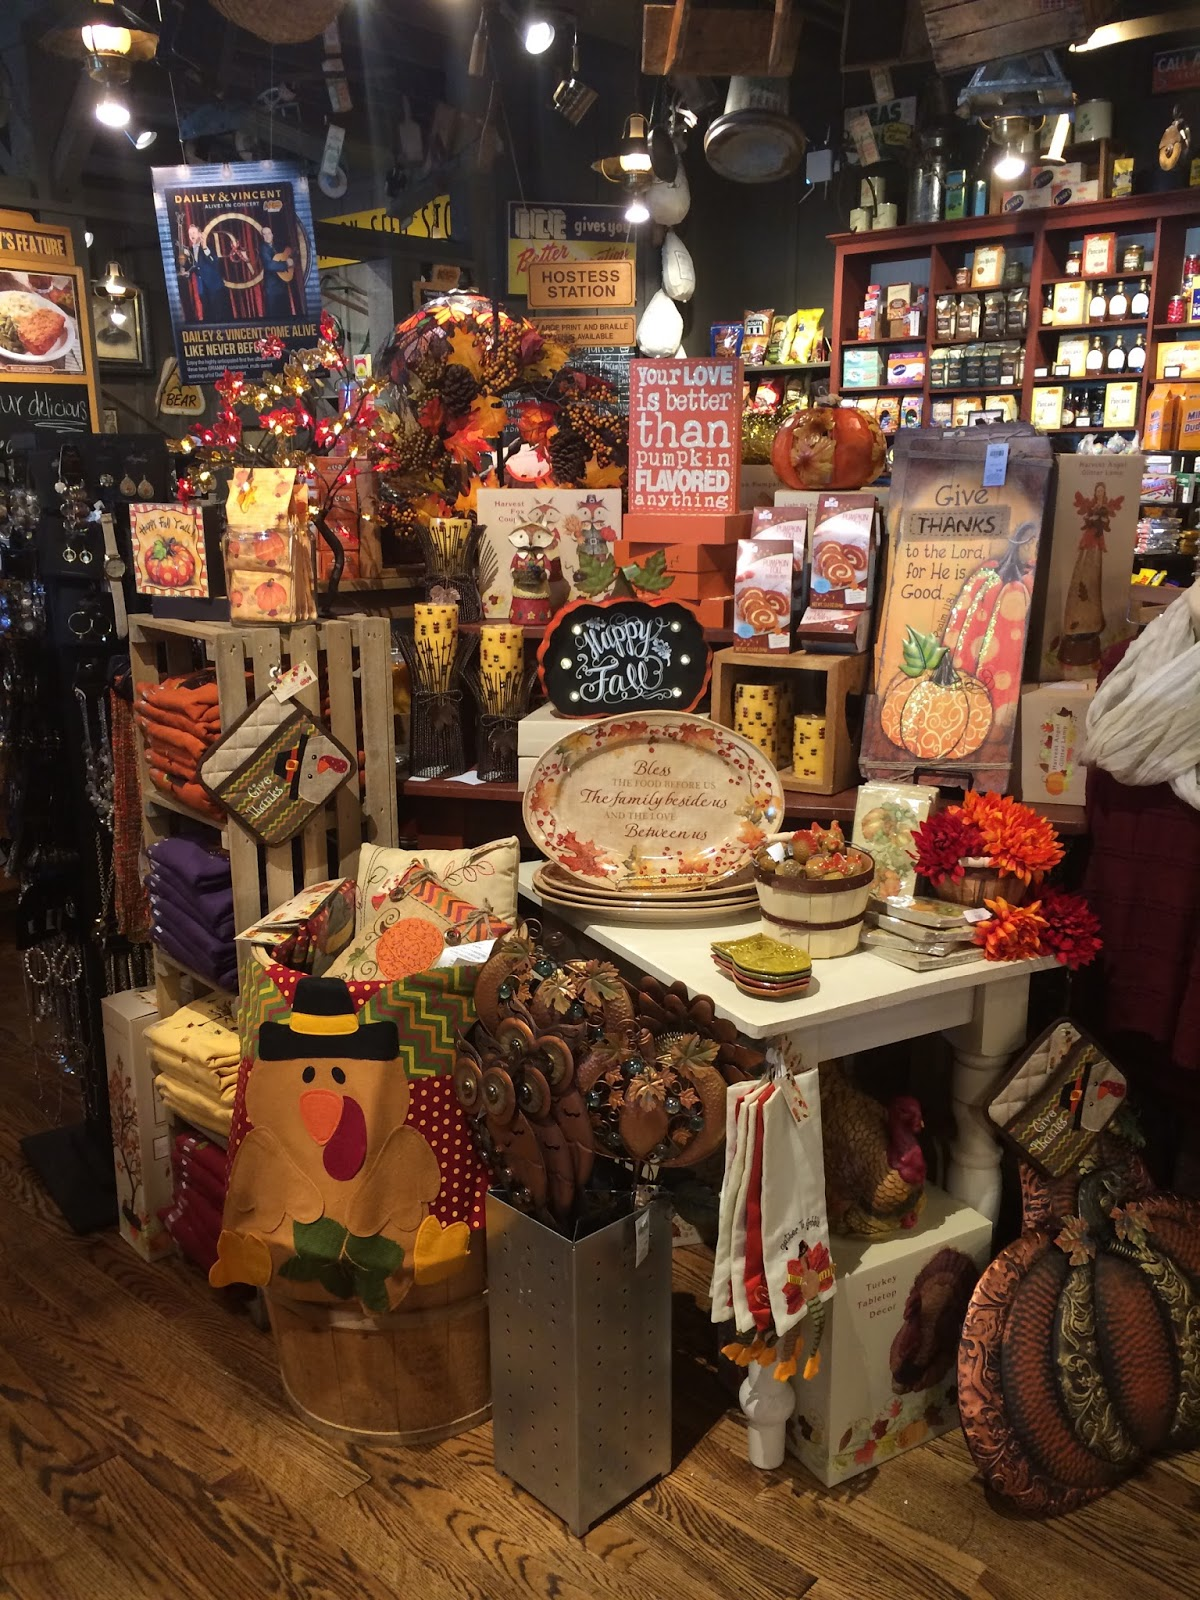 and here is a thanksgiving table at cracker barrel